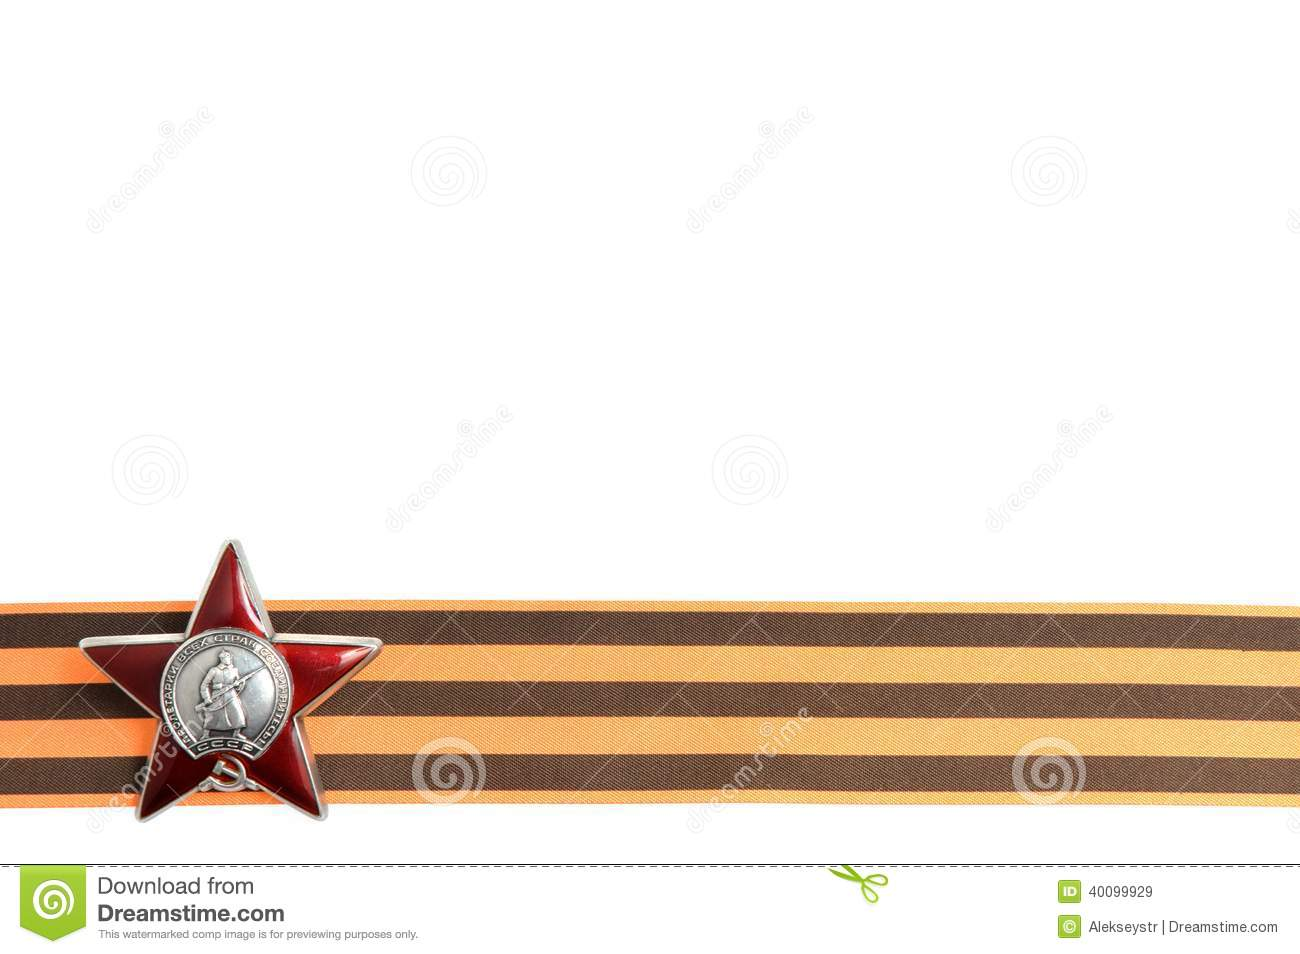 Order of the Red star on Saint George ribbon as horizontal border